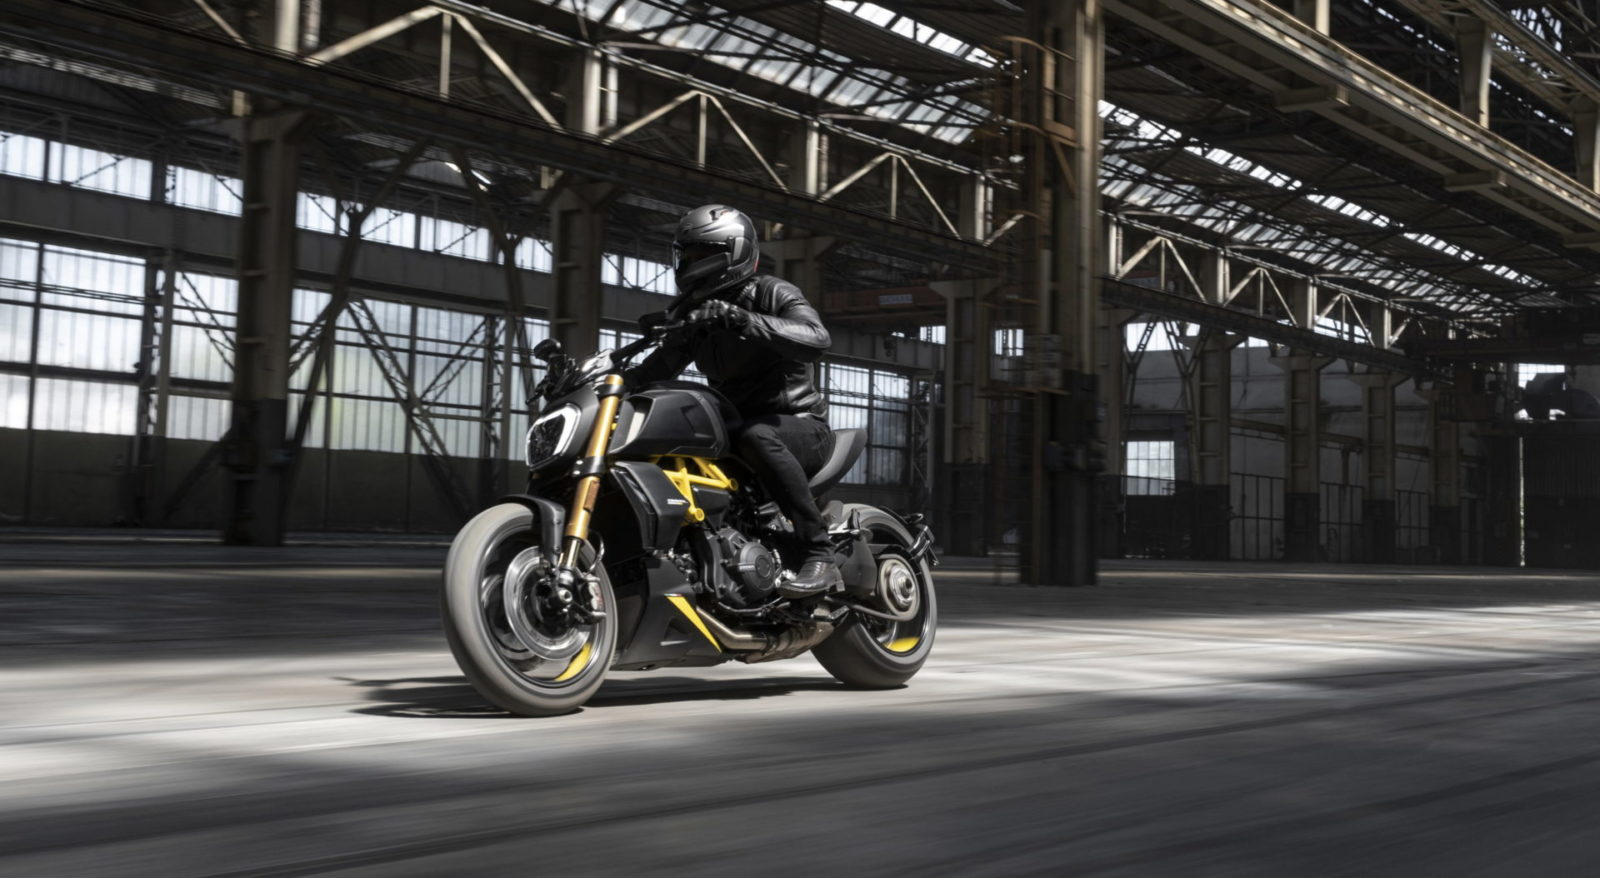 The new Ducati Diavel 1260 S in 'Black and Steel' is a sleek, sexy beast